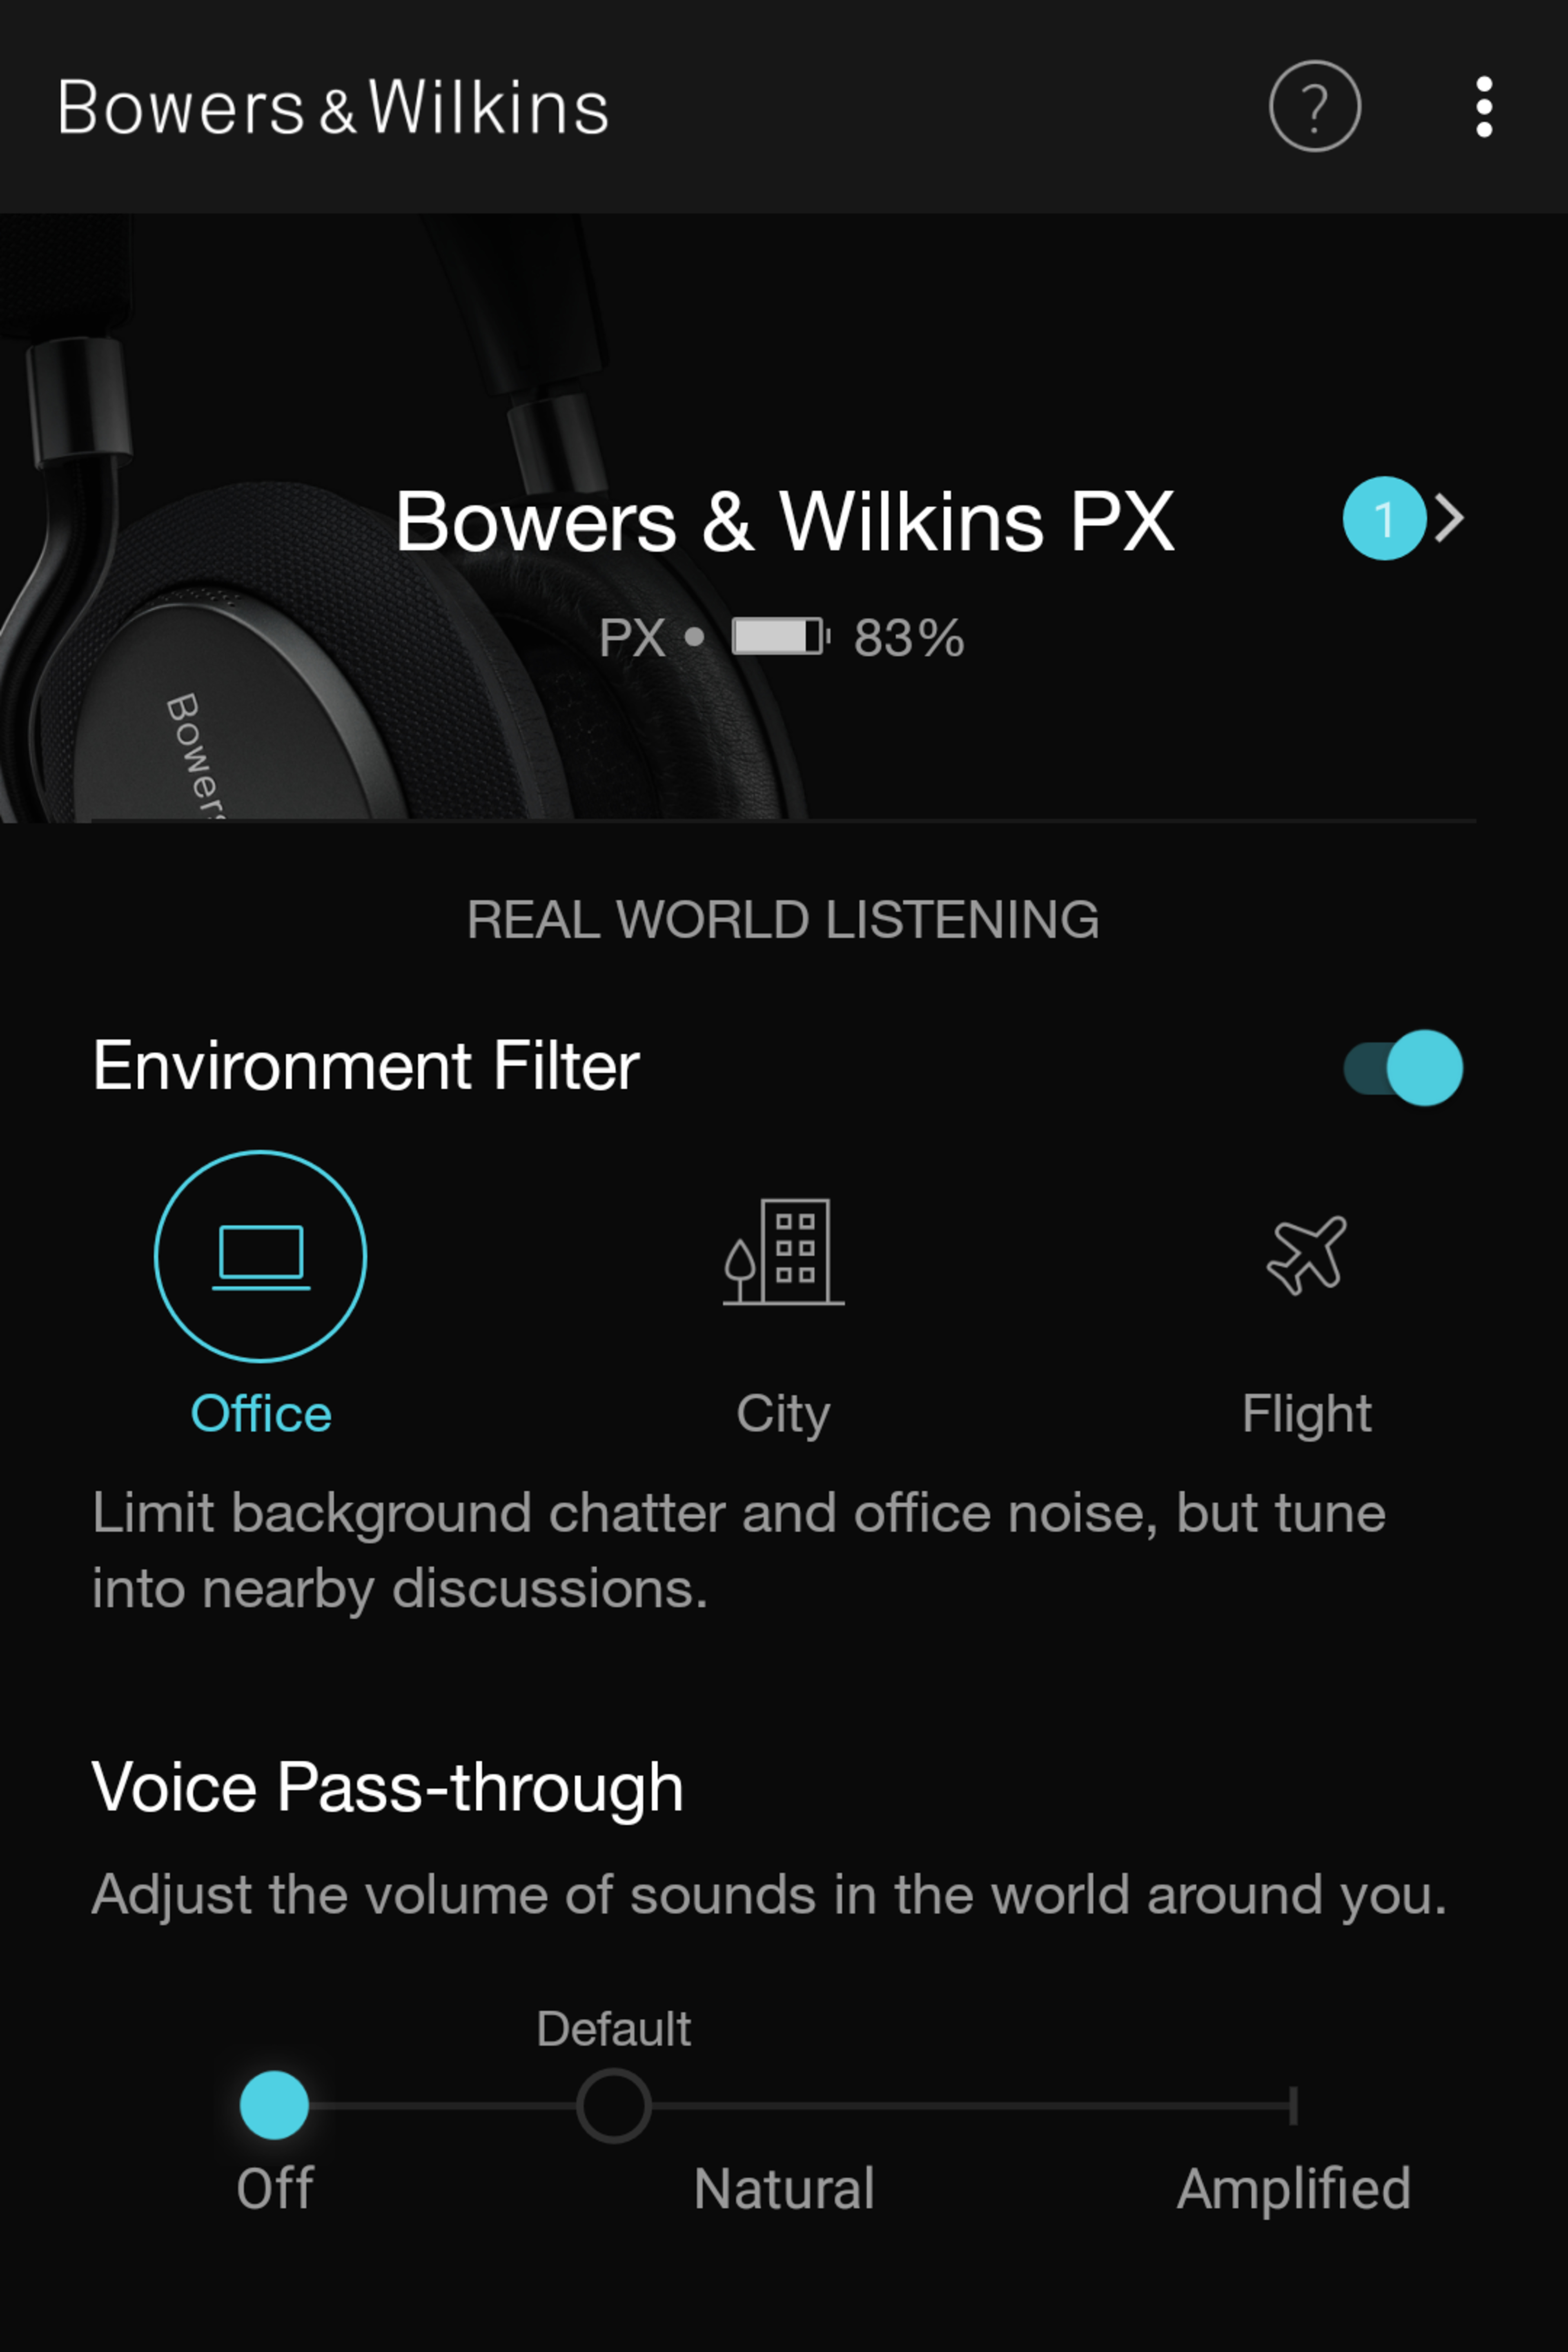 bowers and wilkins px manual